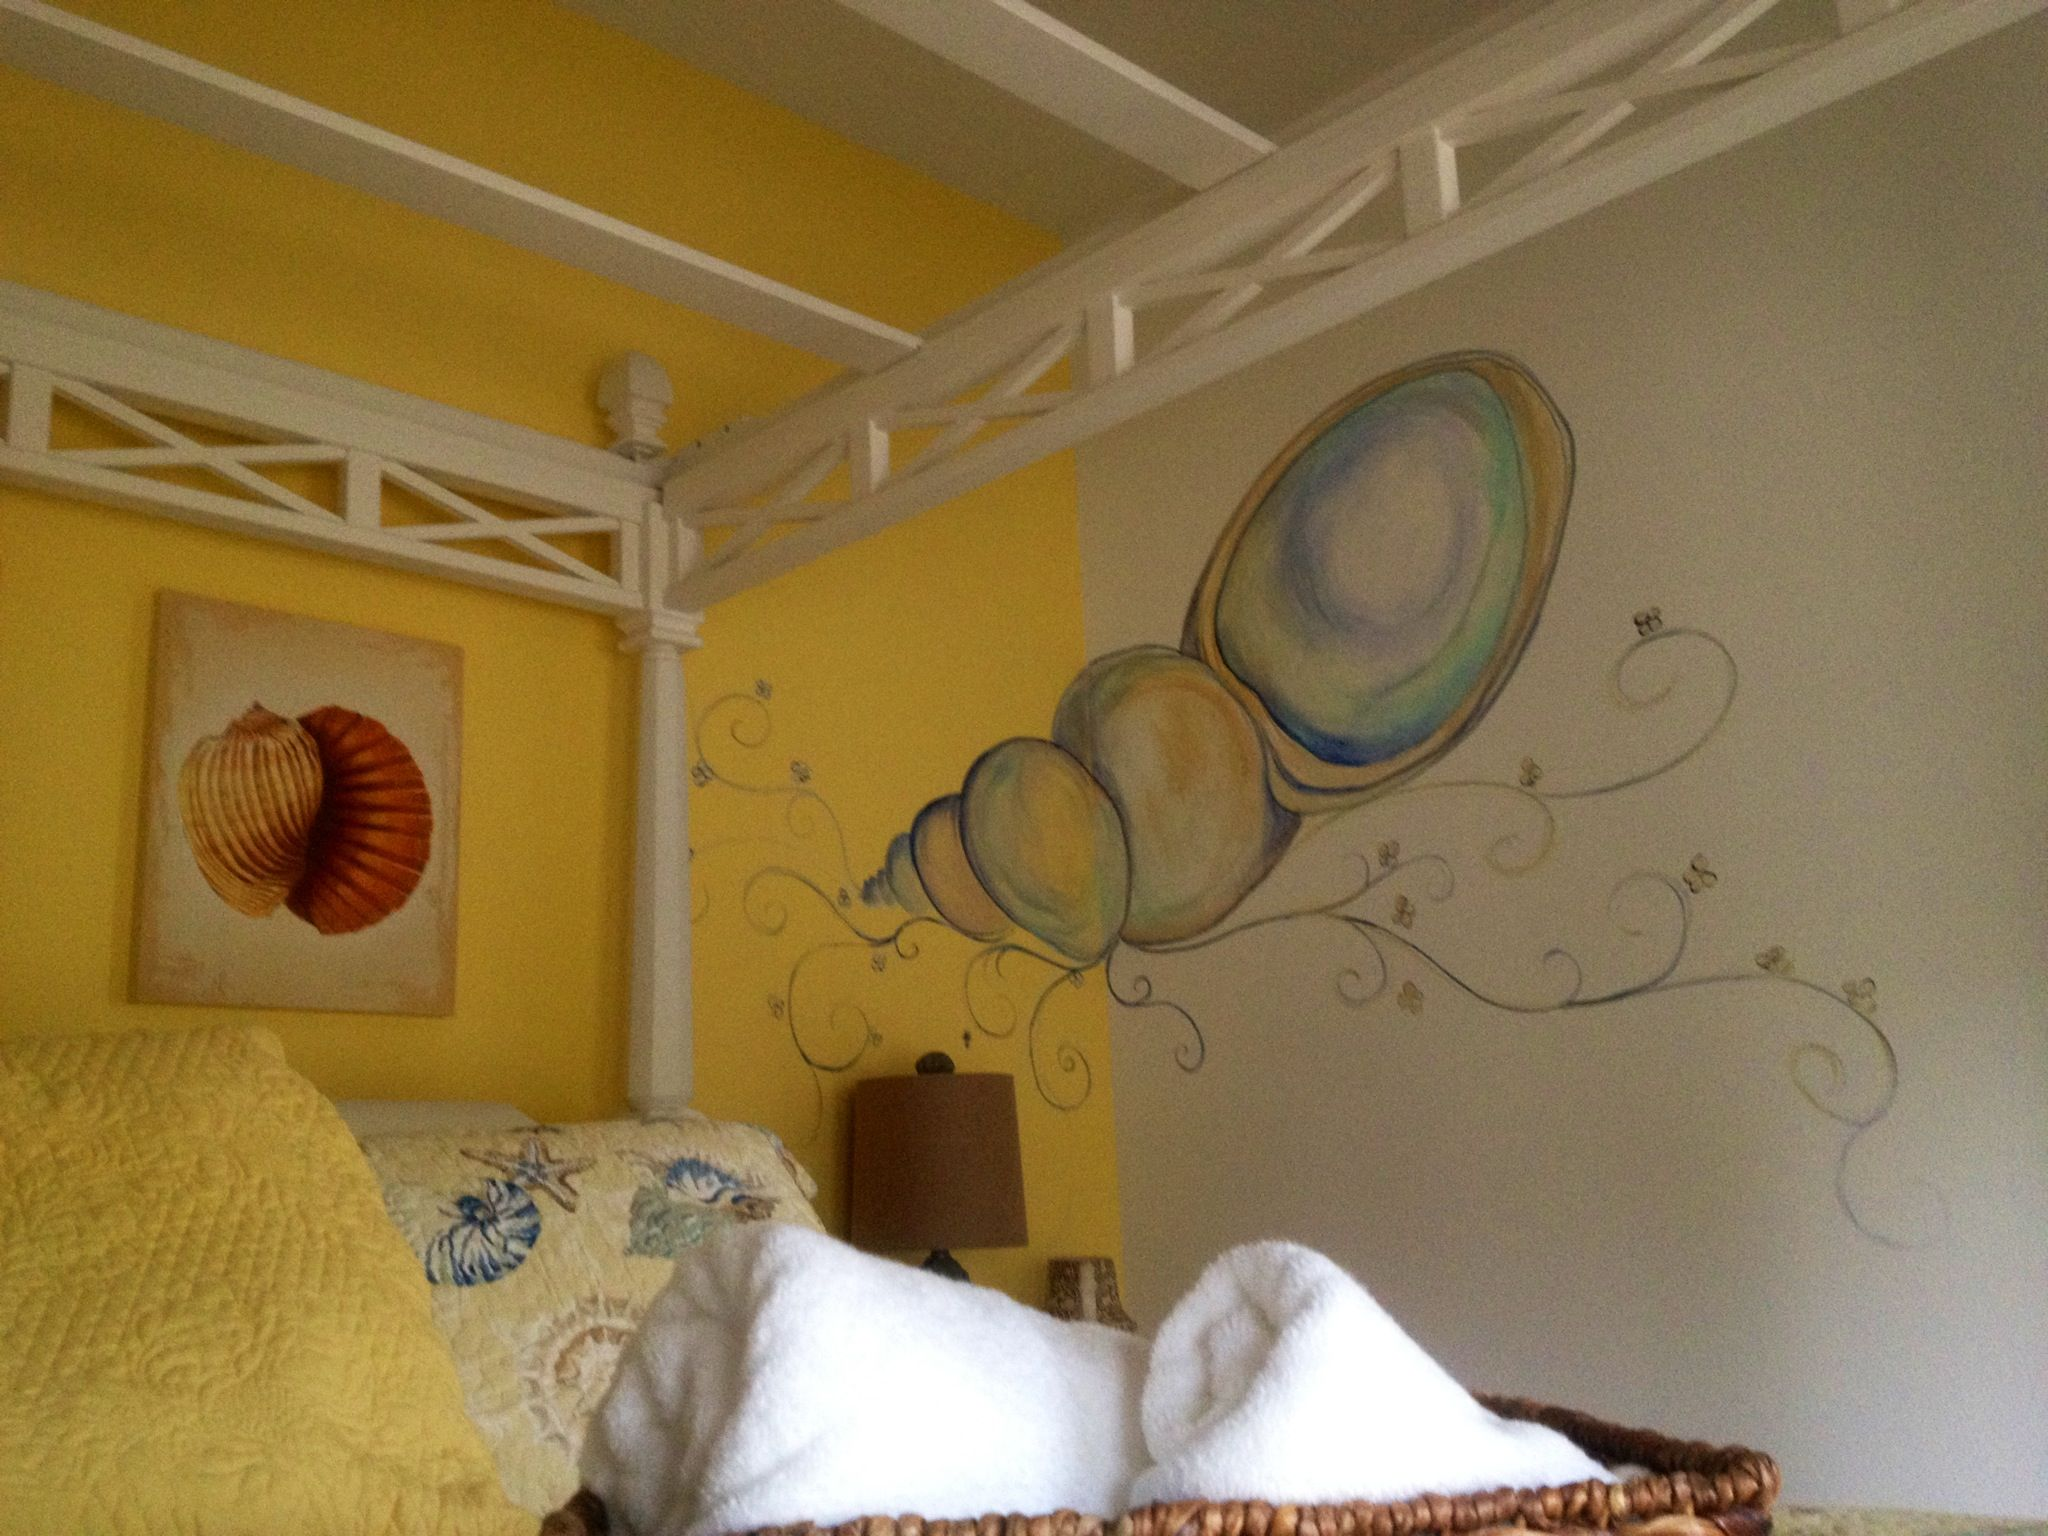 painting decorative images in a corner wall area helps round out a